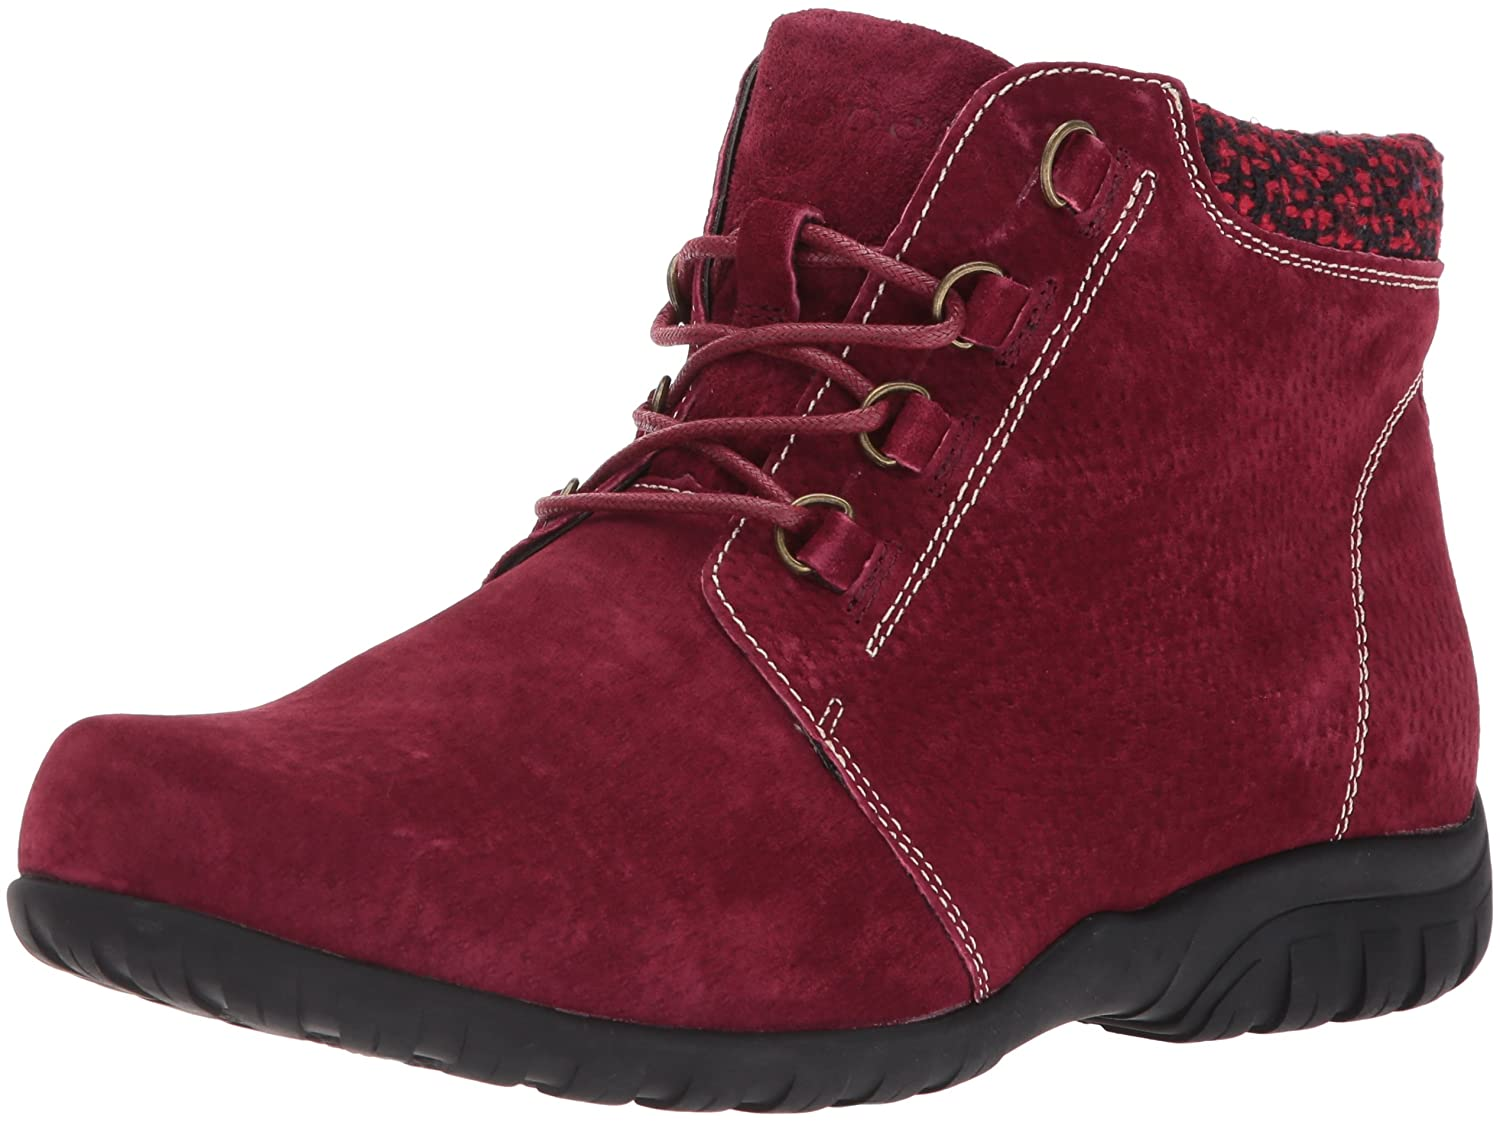 Propet Women's Delaney Ankle Bootie B06XRP22YV 9 4E US|Dark Red